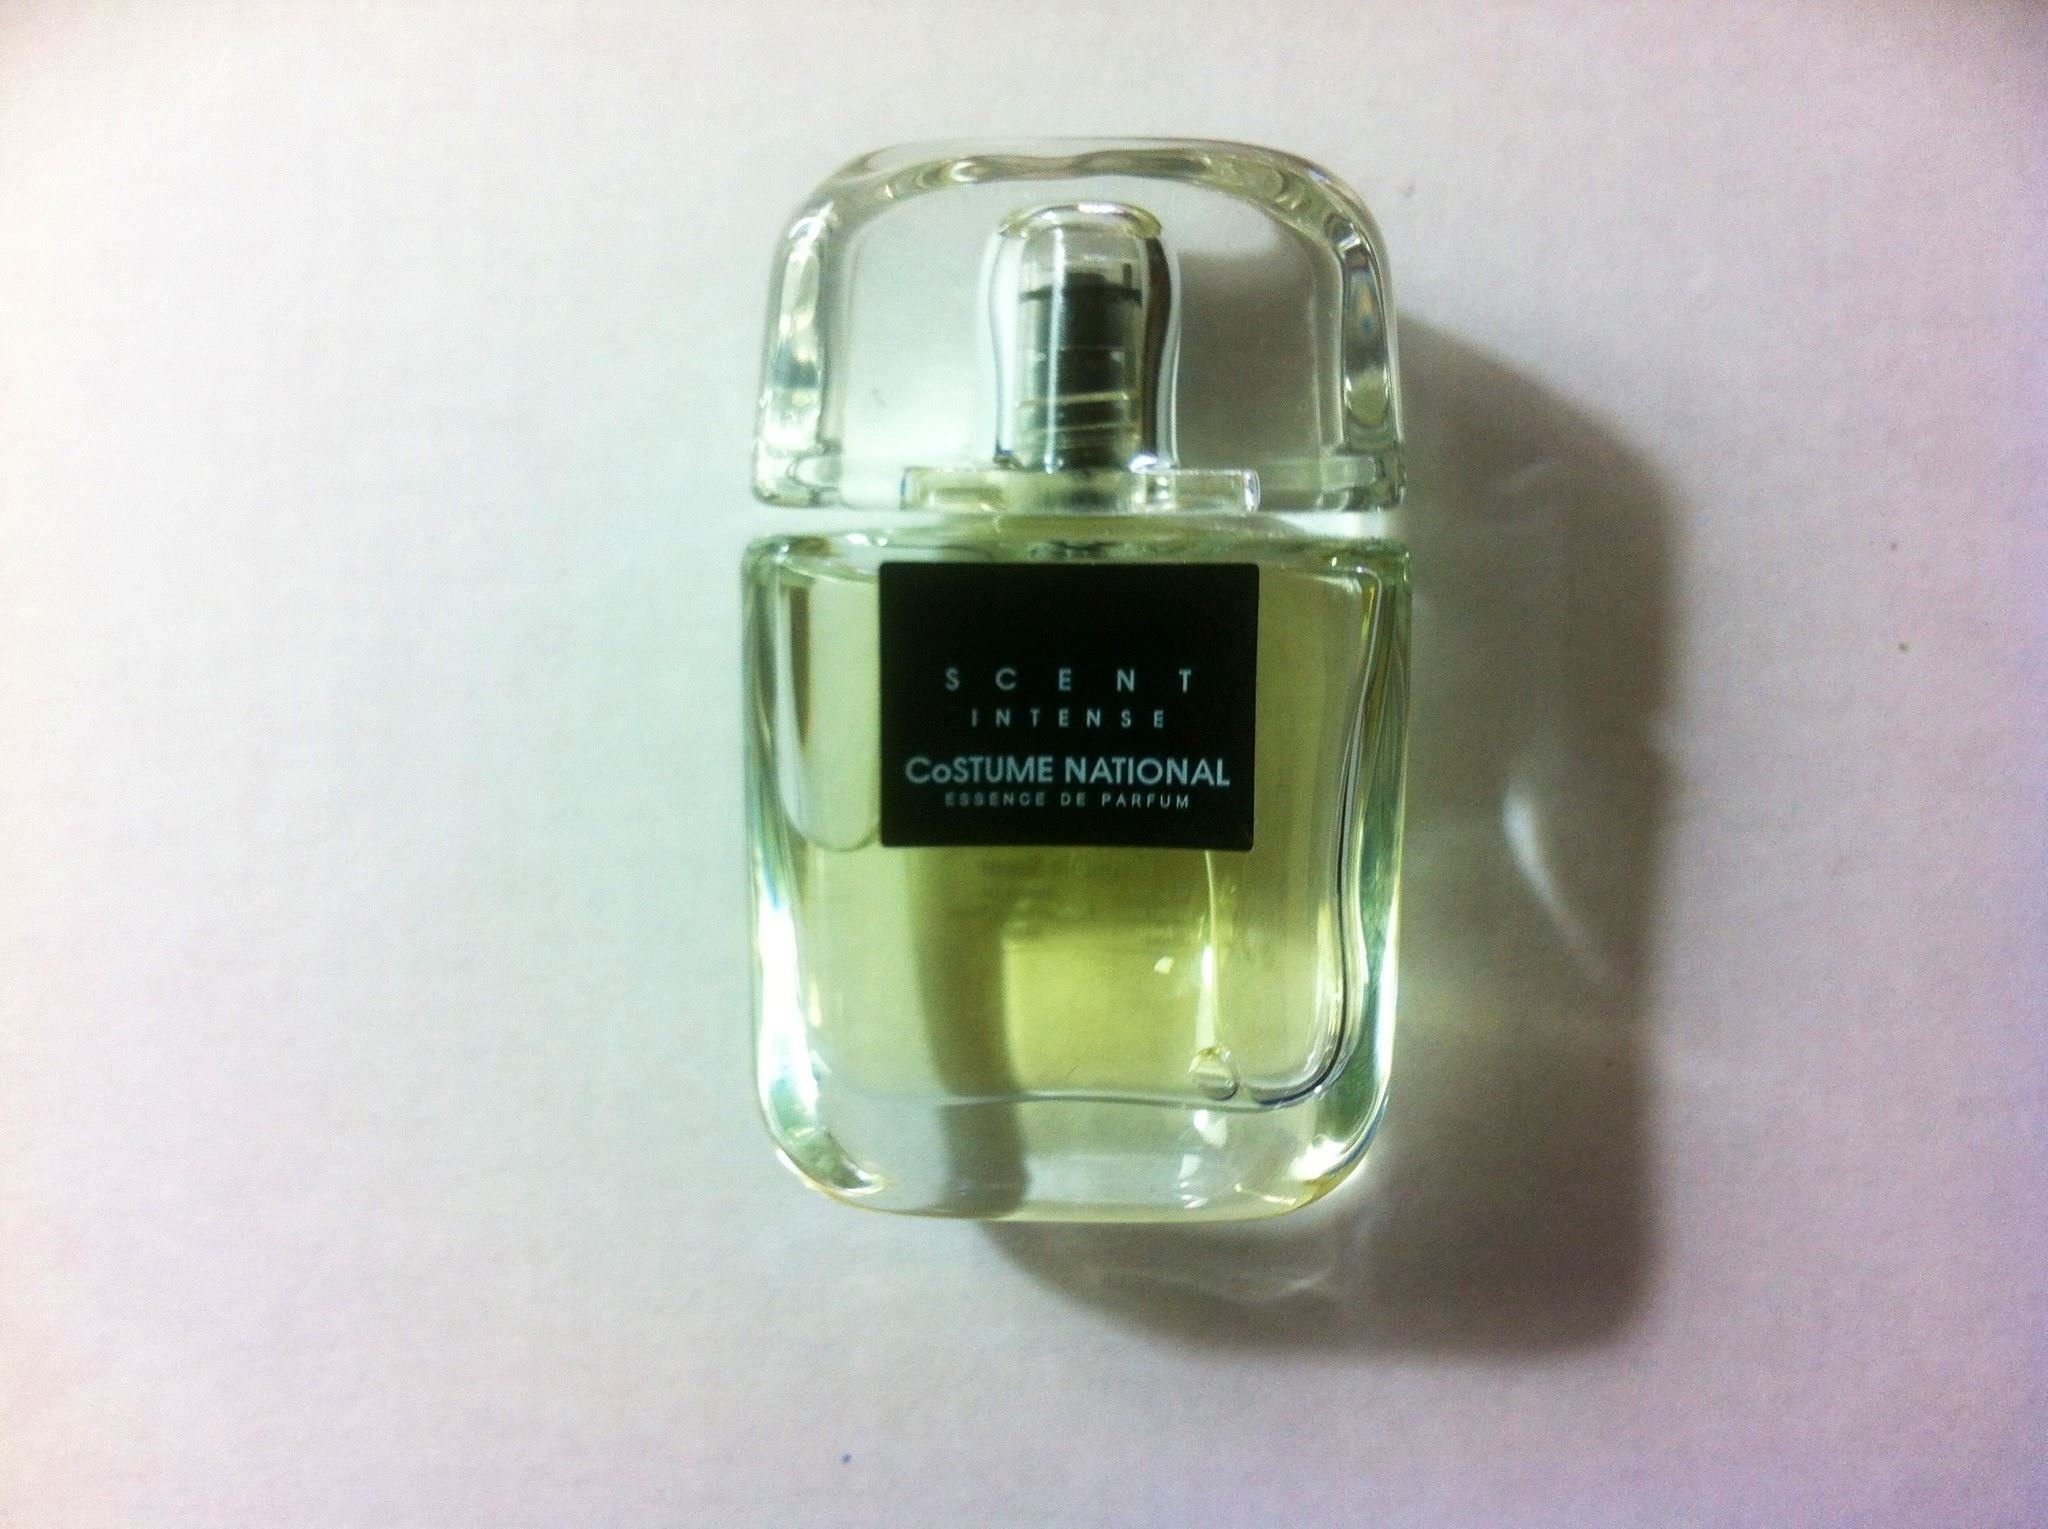 Costume national scent intense essence de parfum 15ml